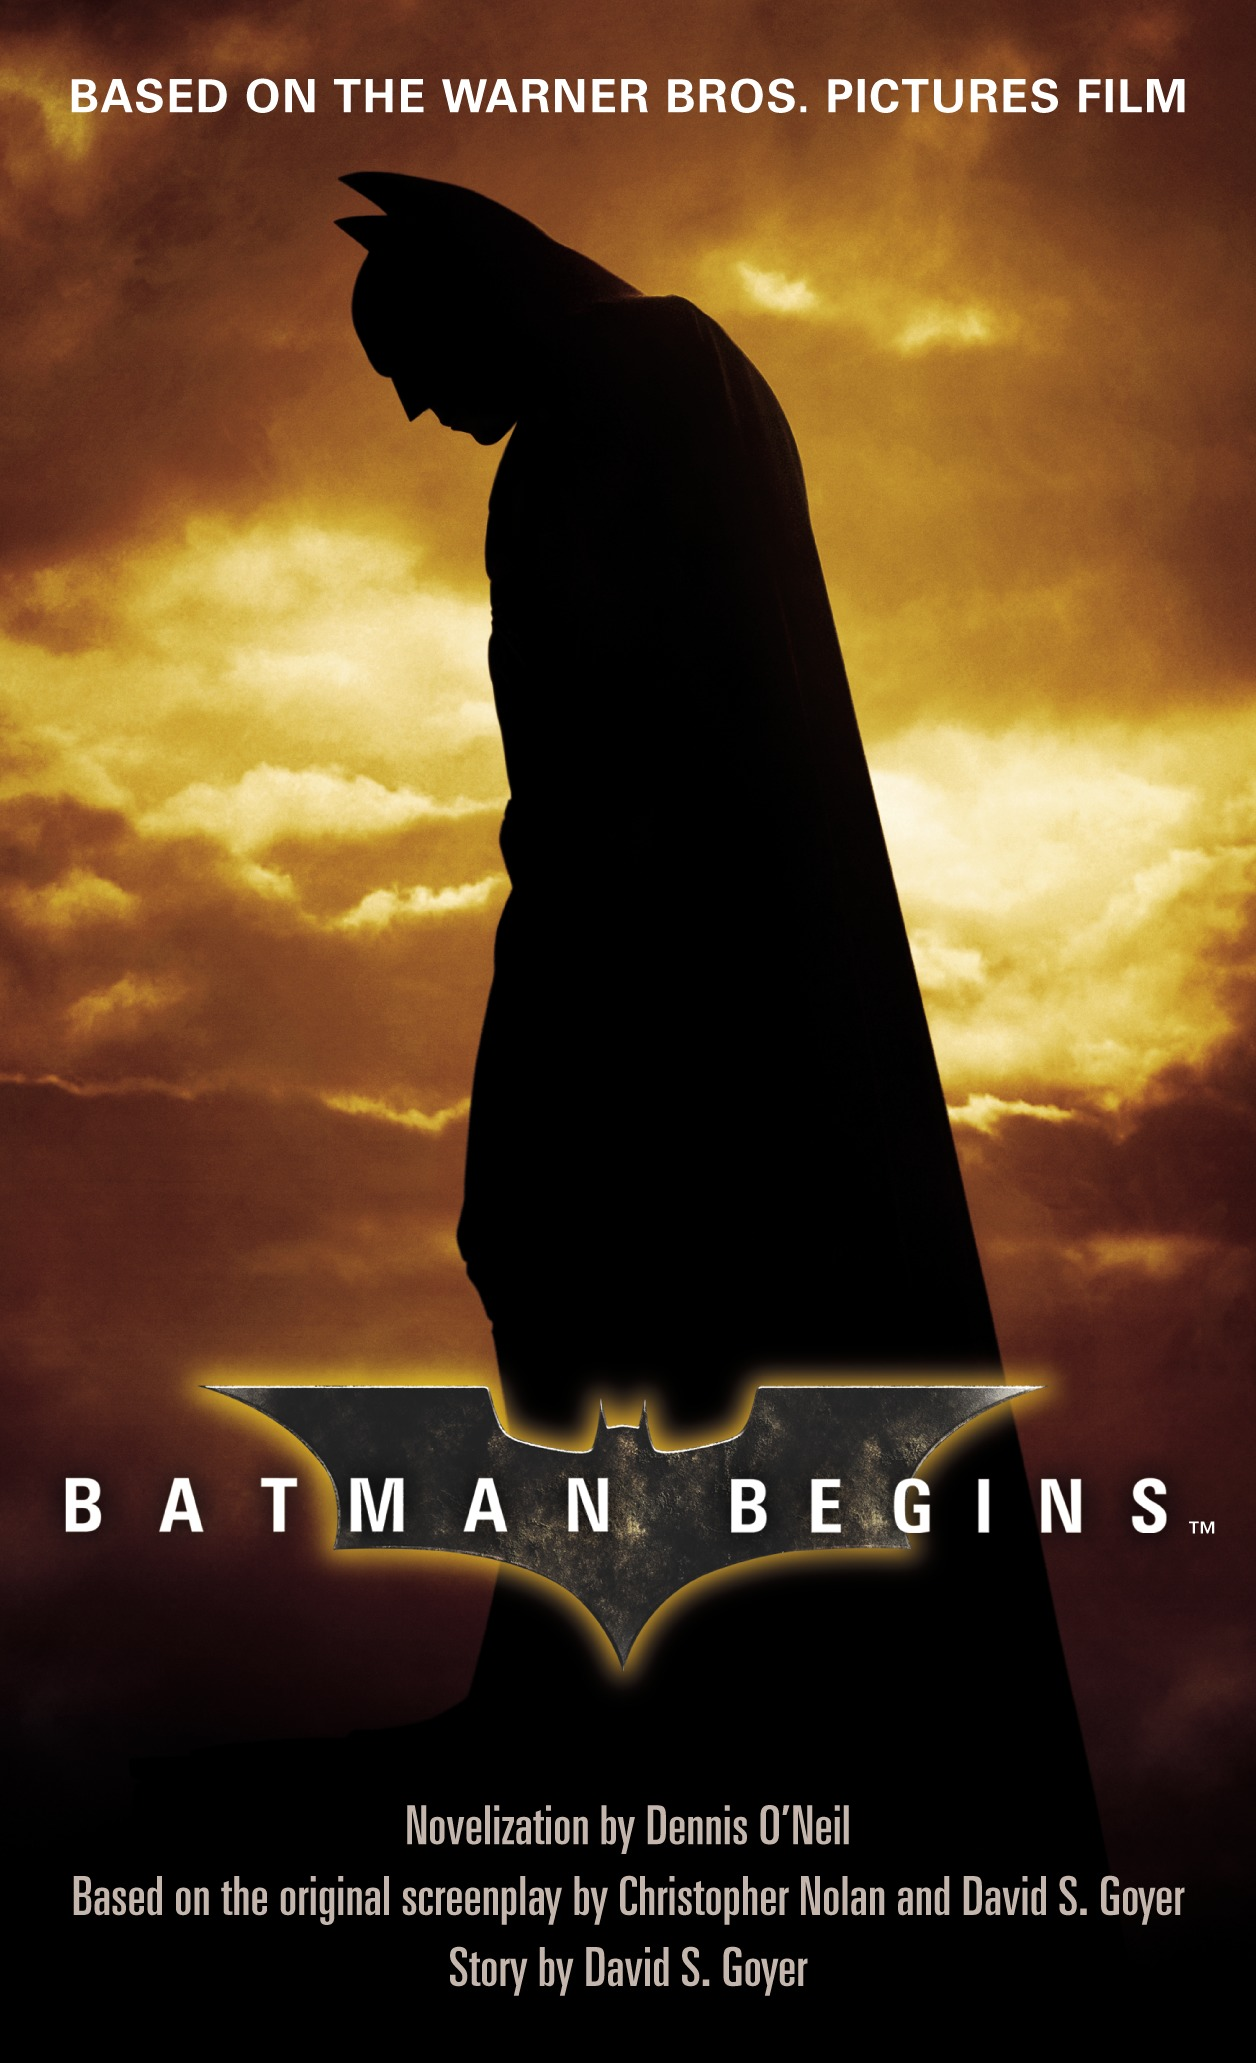 Batman Begins - Novelzation